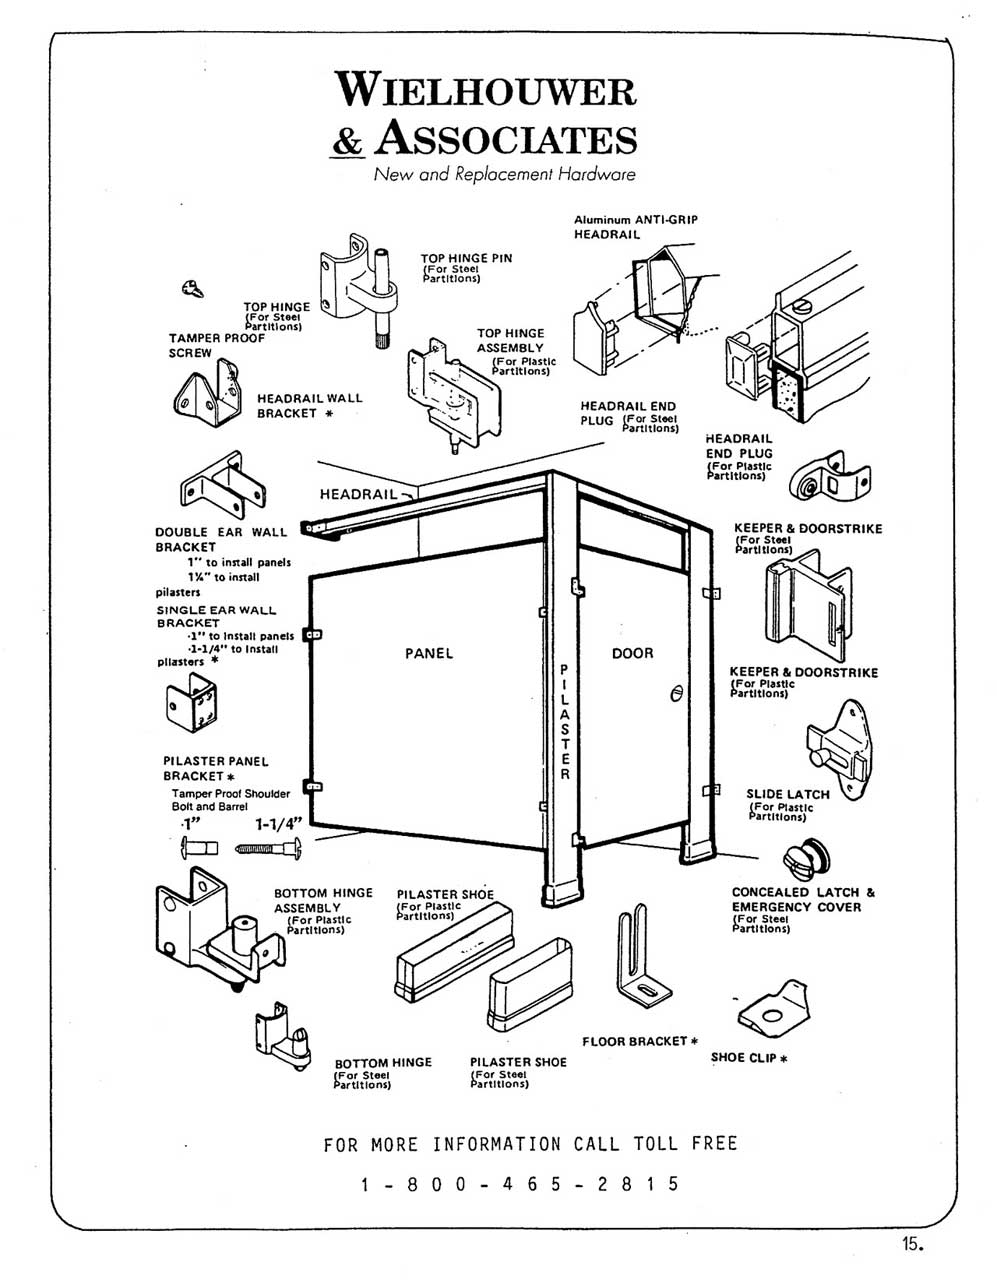 Toilet partitions parts identification diagram toilet for Bathroom stall partitions parts